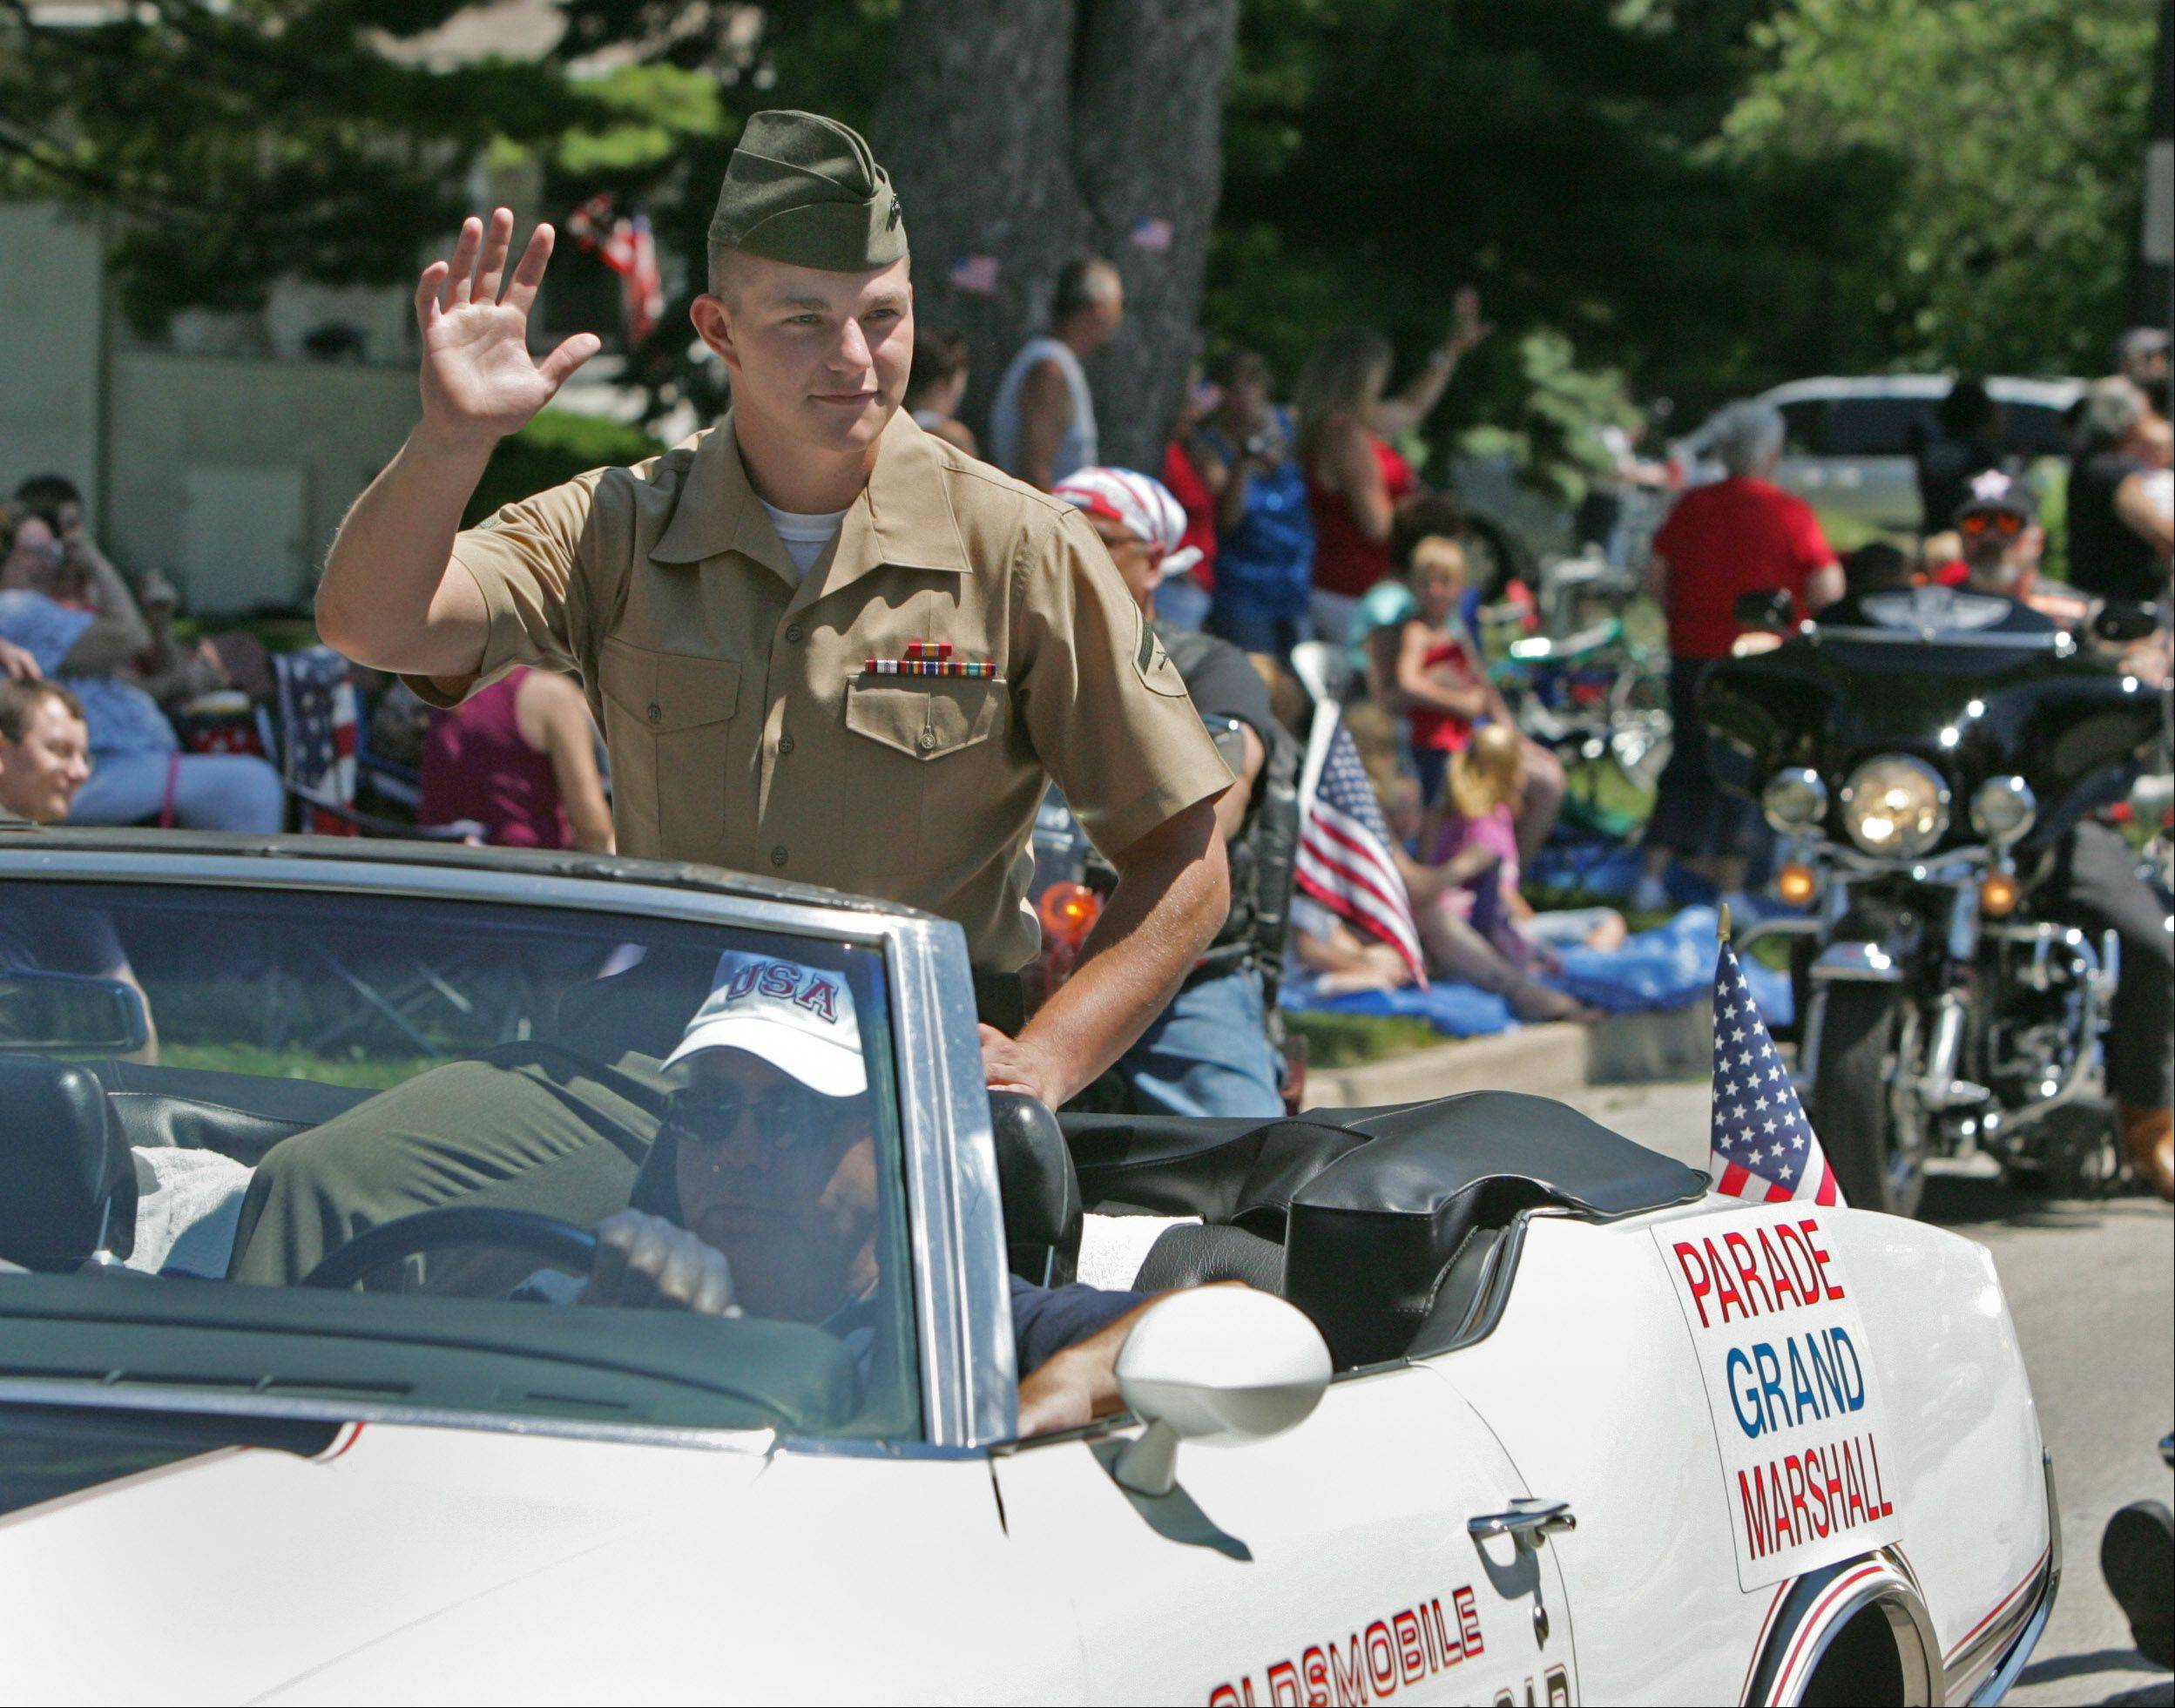 Daniel white/Dwhite@dailyherald.com A young Marine, Andrew Pickerill, is the grand marshal of the Villa Park Fourth of July parade. He is back for one month, before returning to Afghanistan.